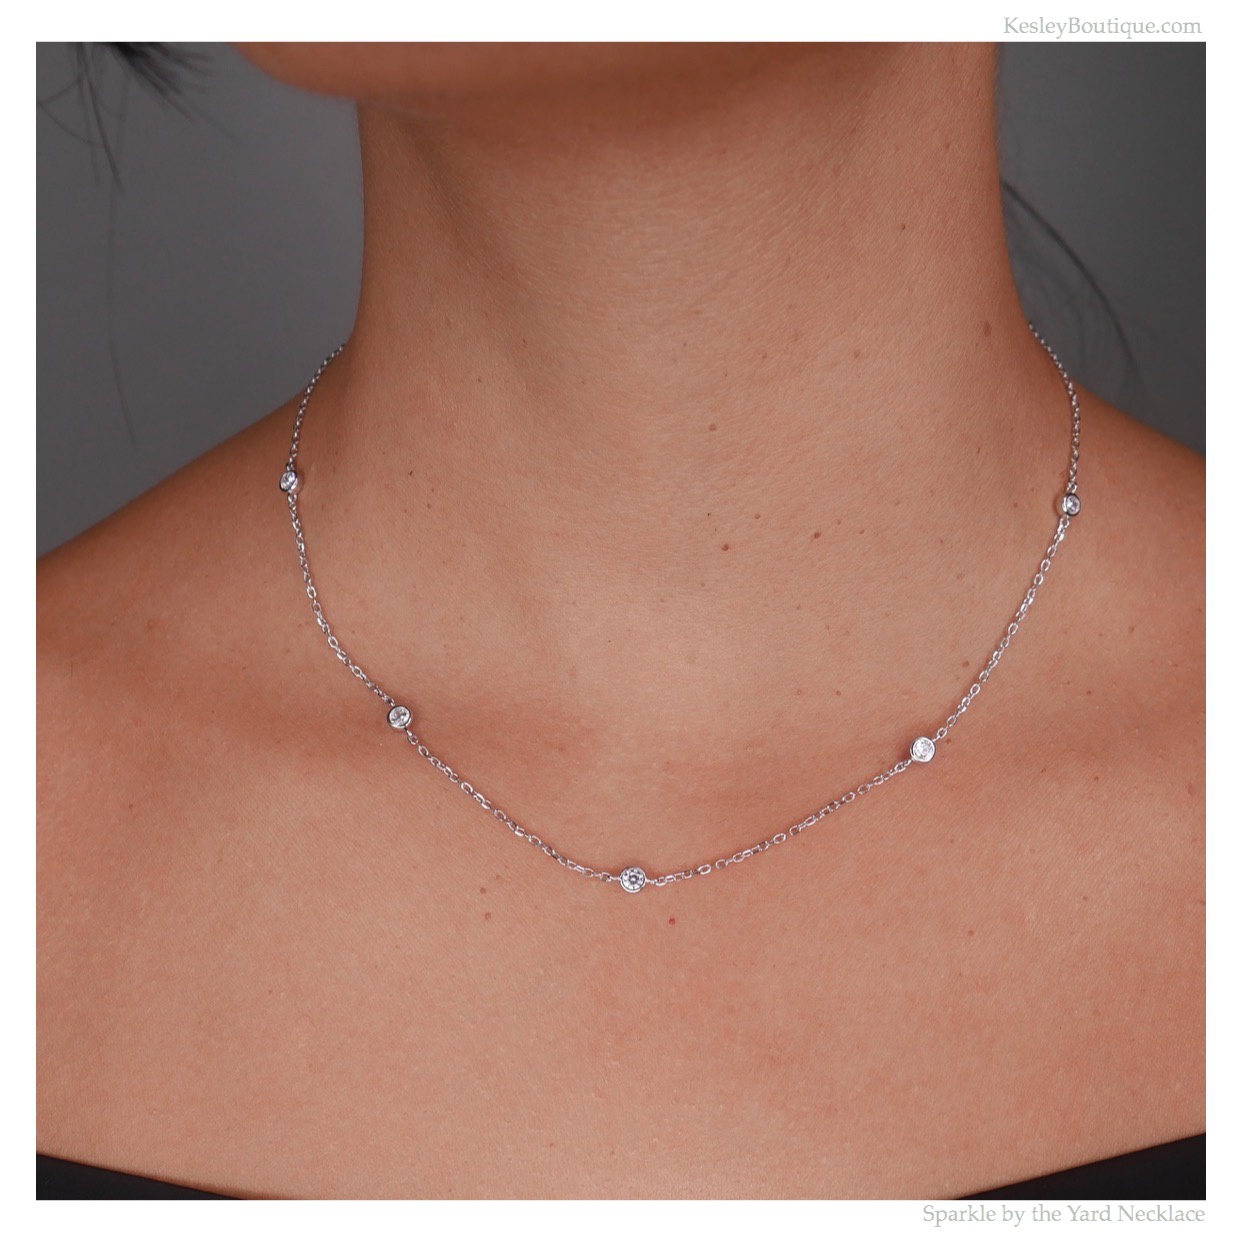 Sparkle by the Yard Necklace